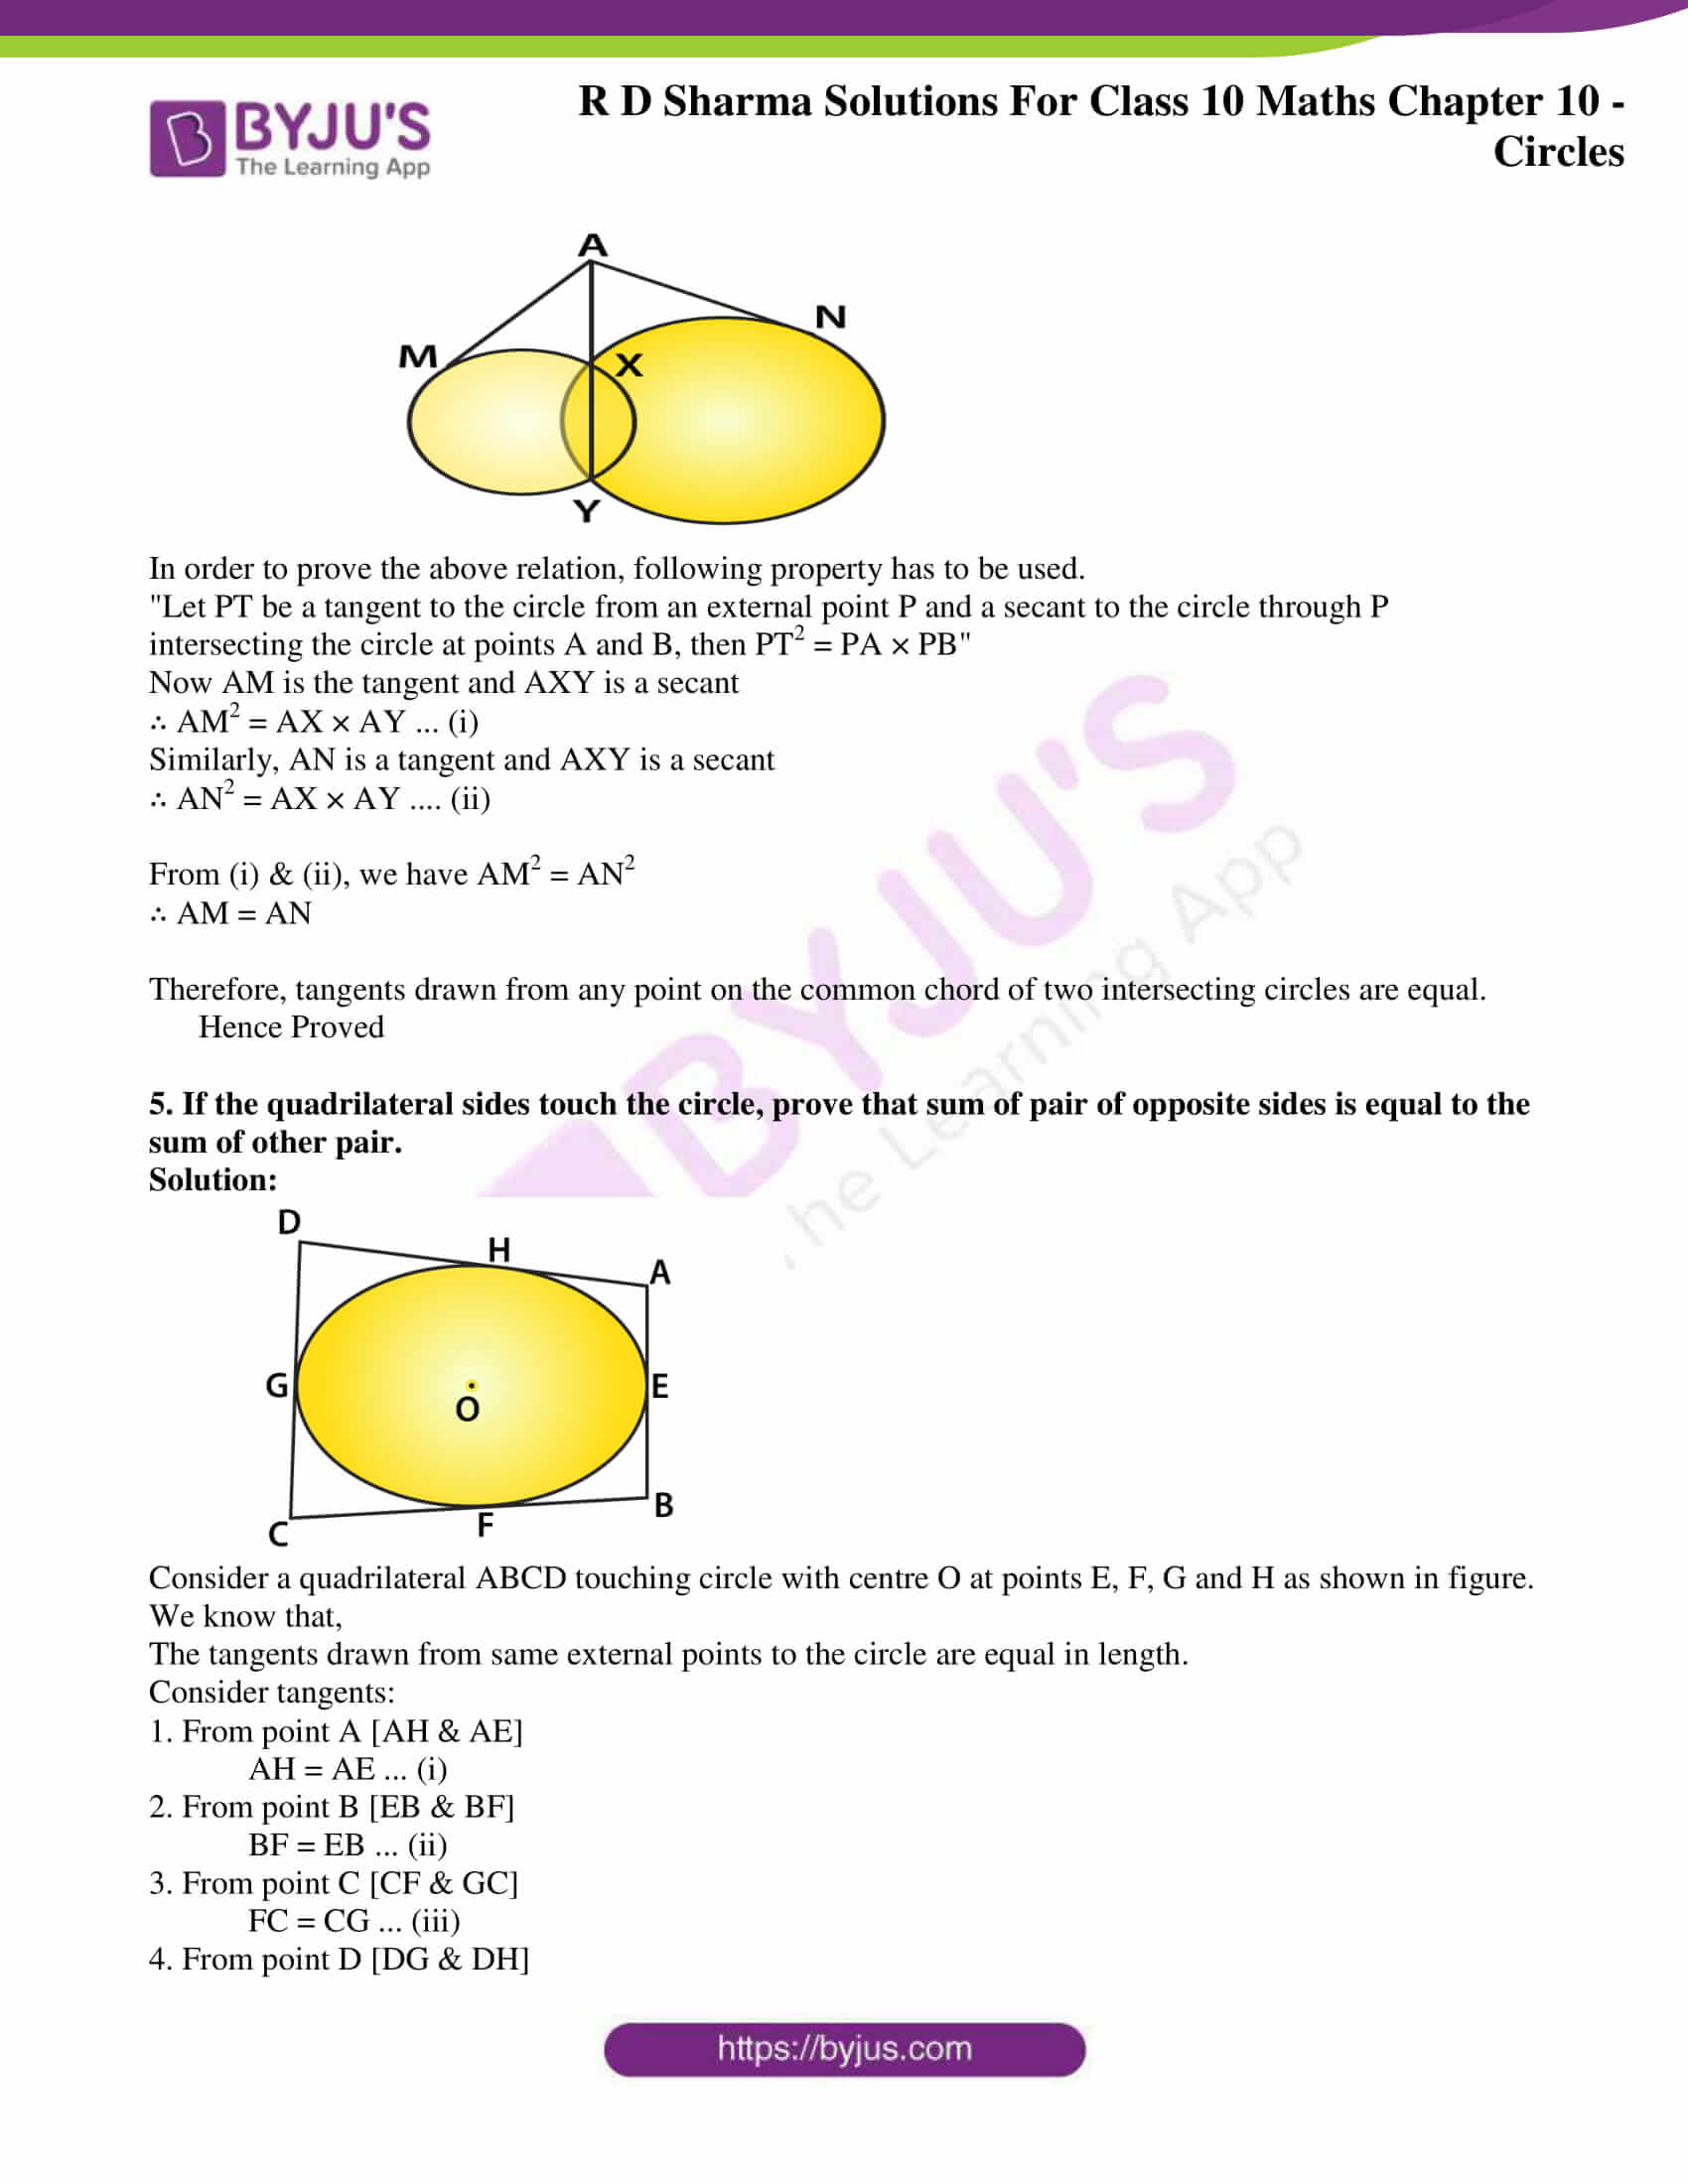 rd sharma class 10 chapter 10 circles solutions exercise 2 03